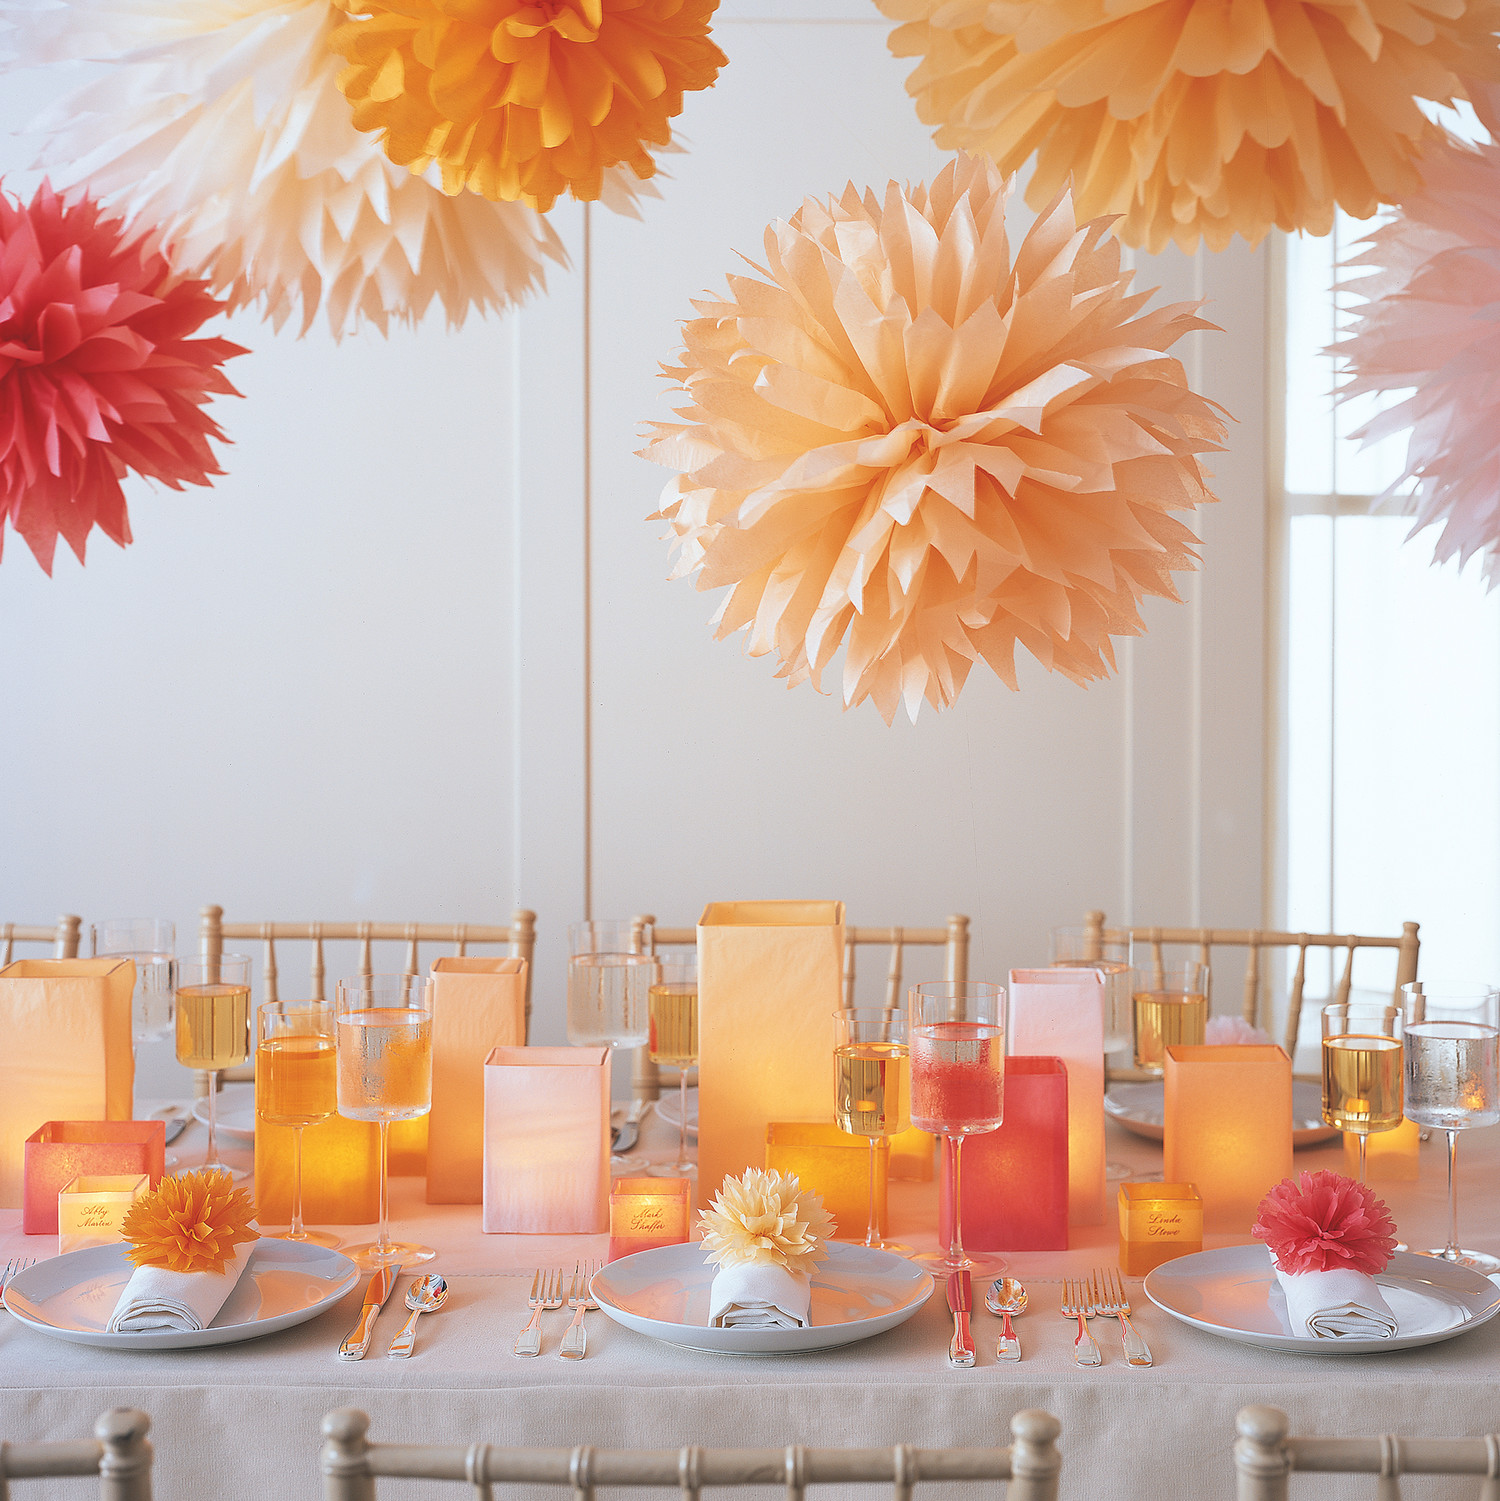 Decoration Ideas: Floral Party Decor